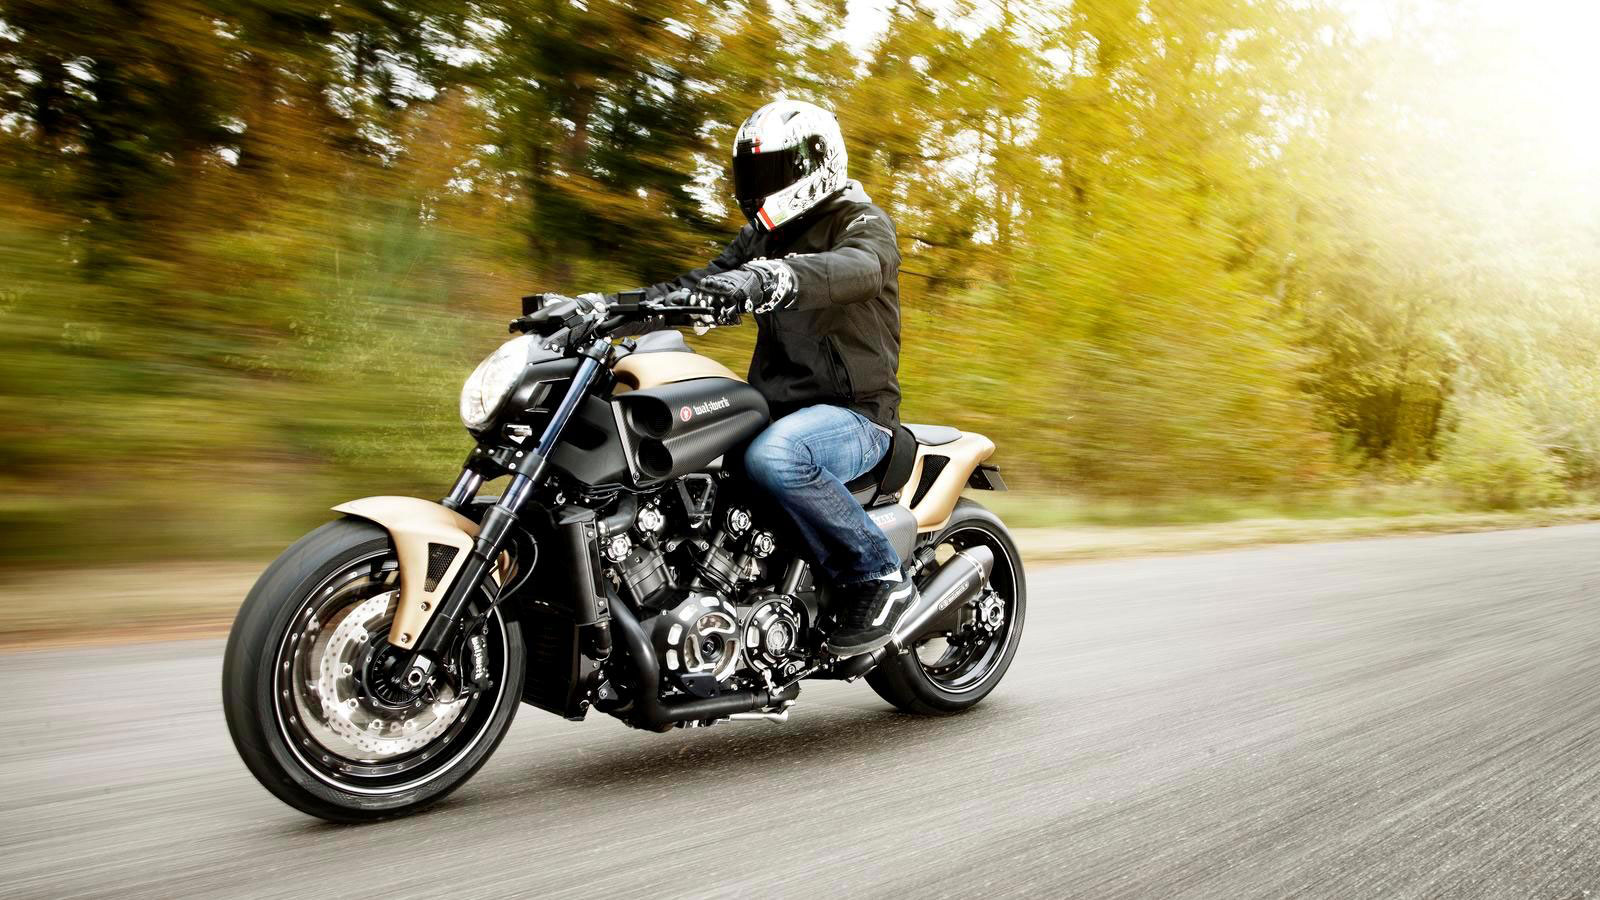 2013 Yamaha VMAX Hyper Modified Marcus Walz